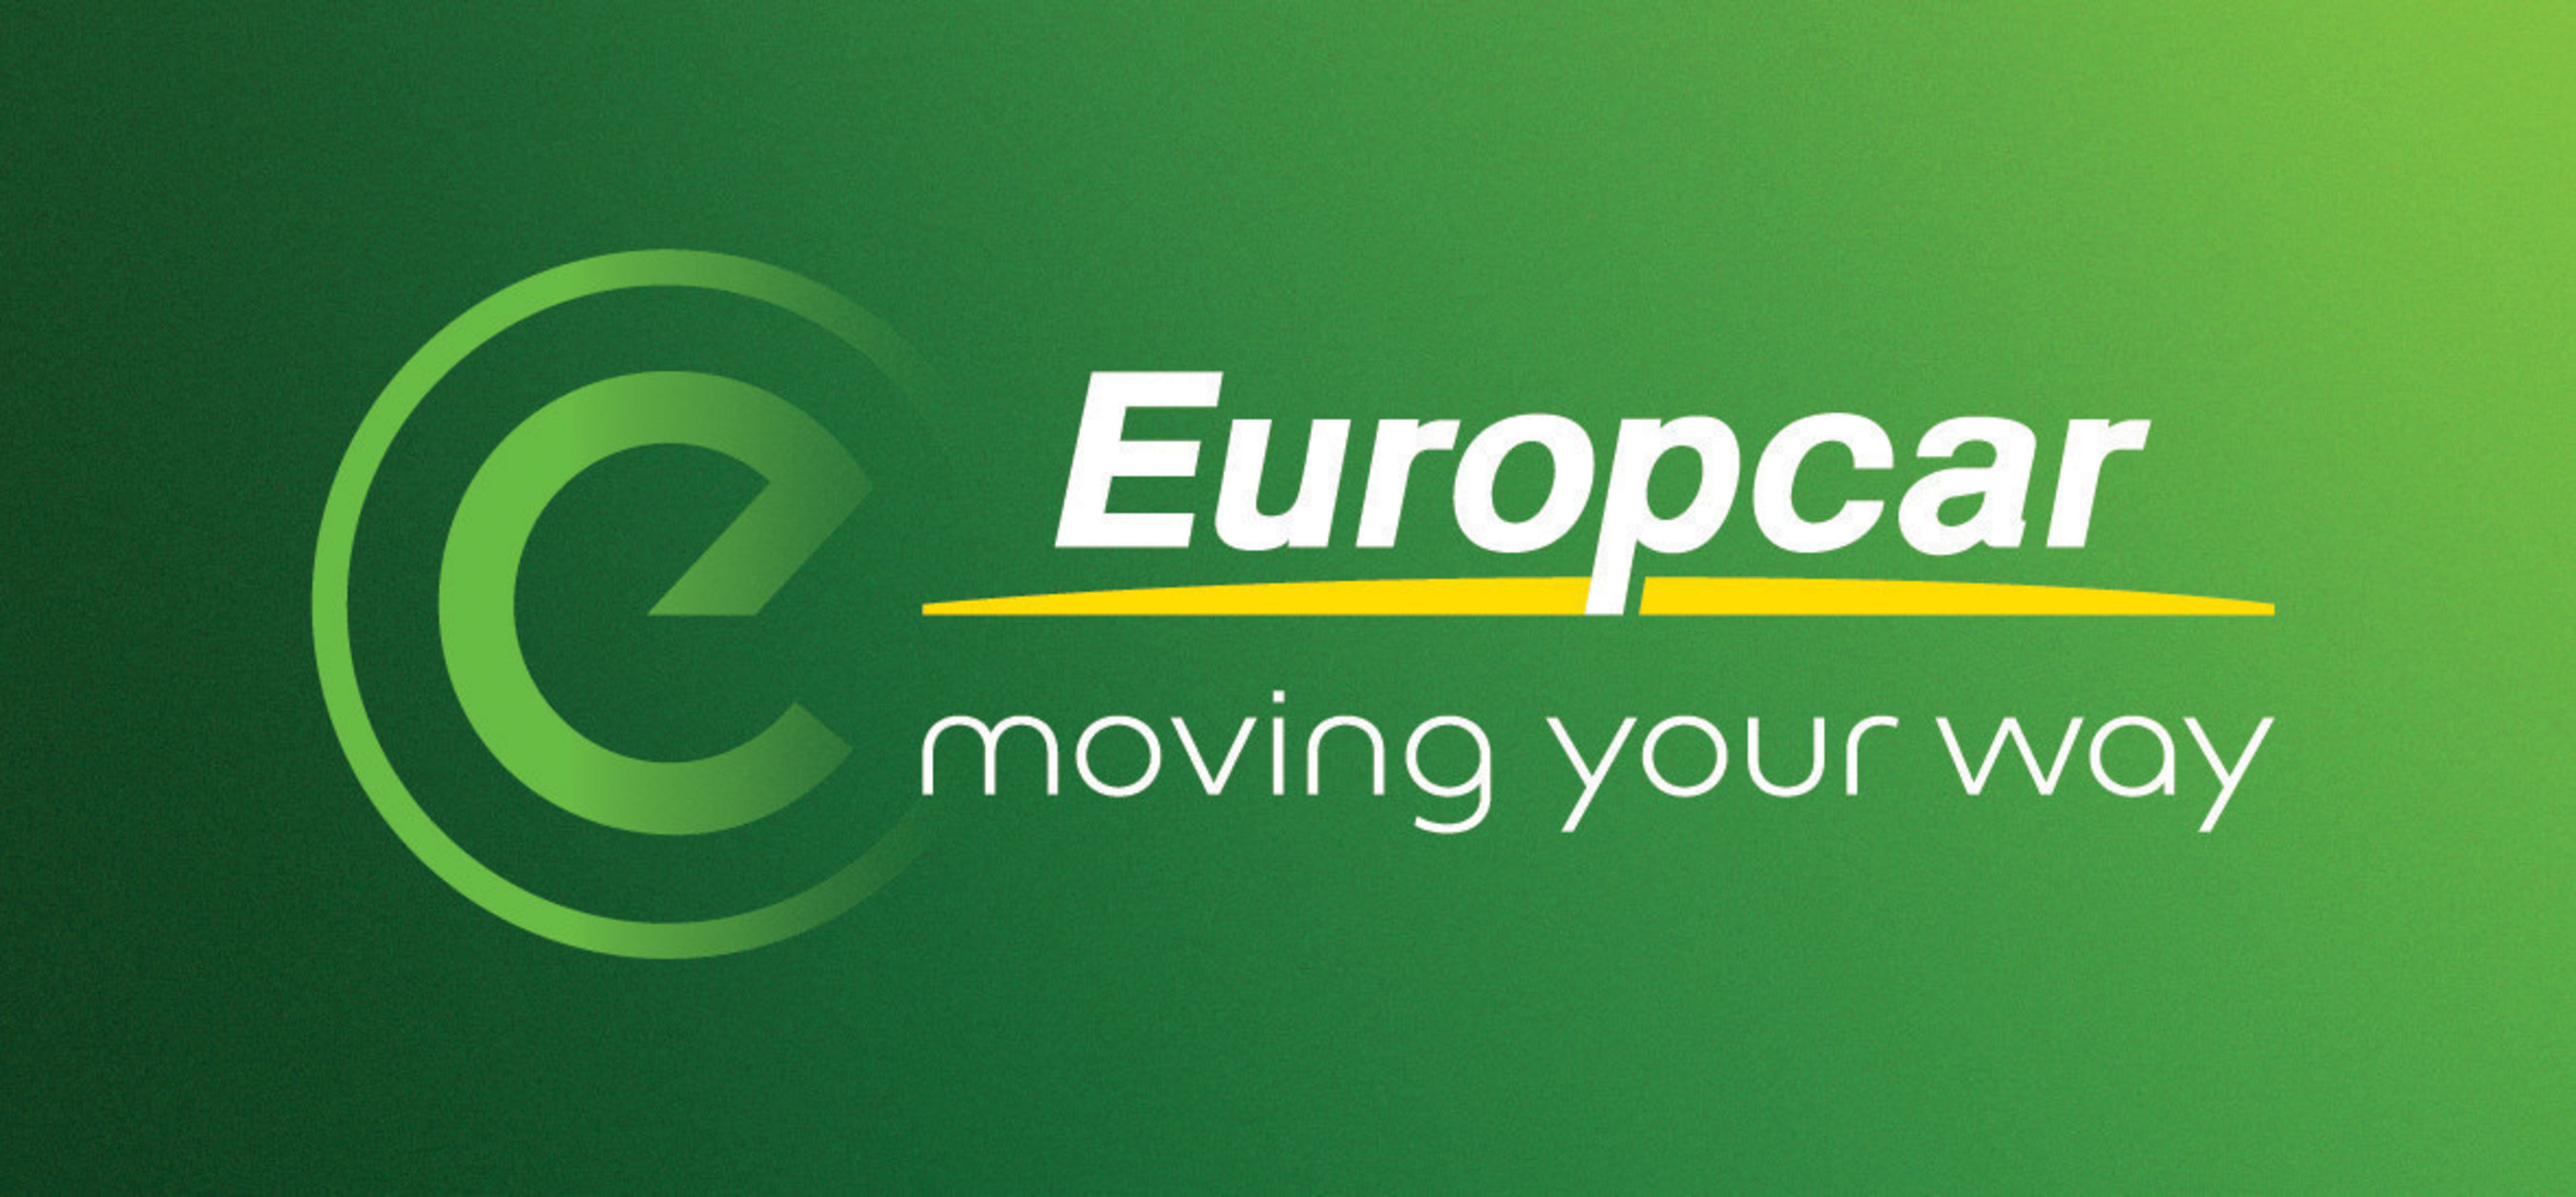 Live Nation And Europcar Announce Partnership Across Australia And